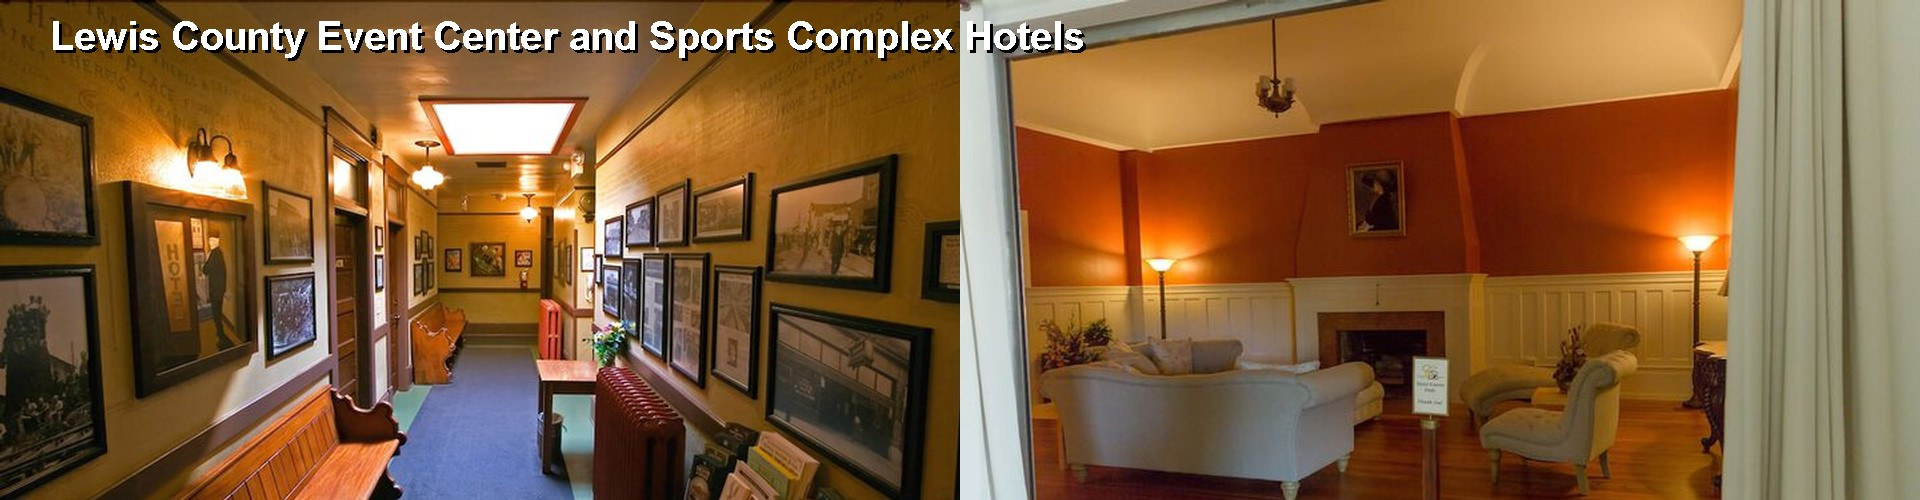 5 Best Hotels near Lewis County Event Center and Sports Complex